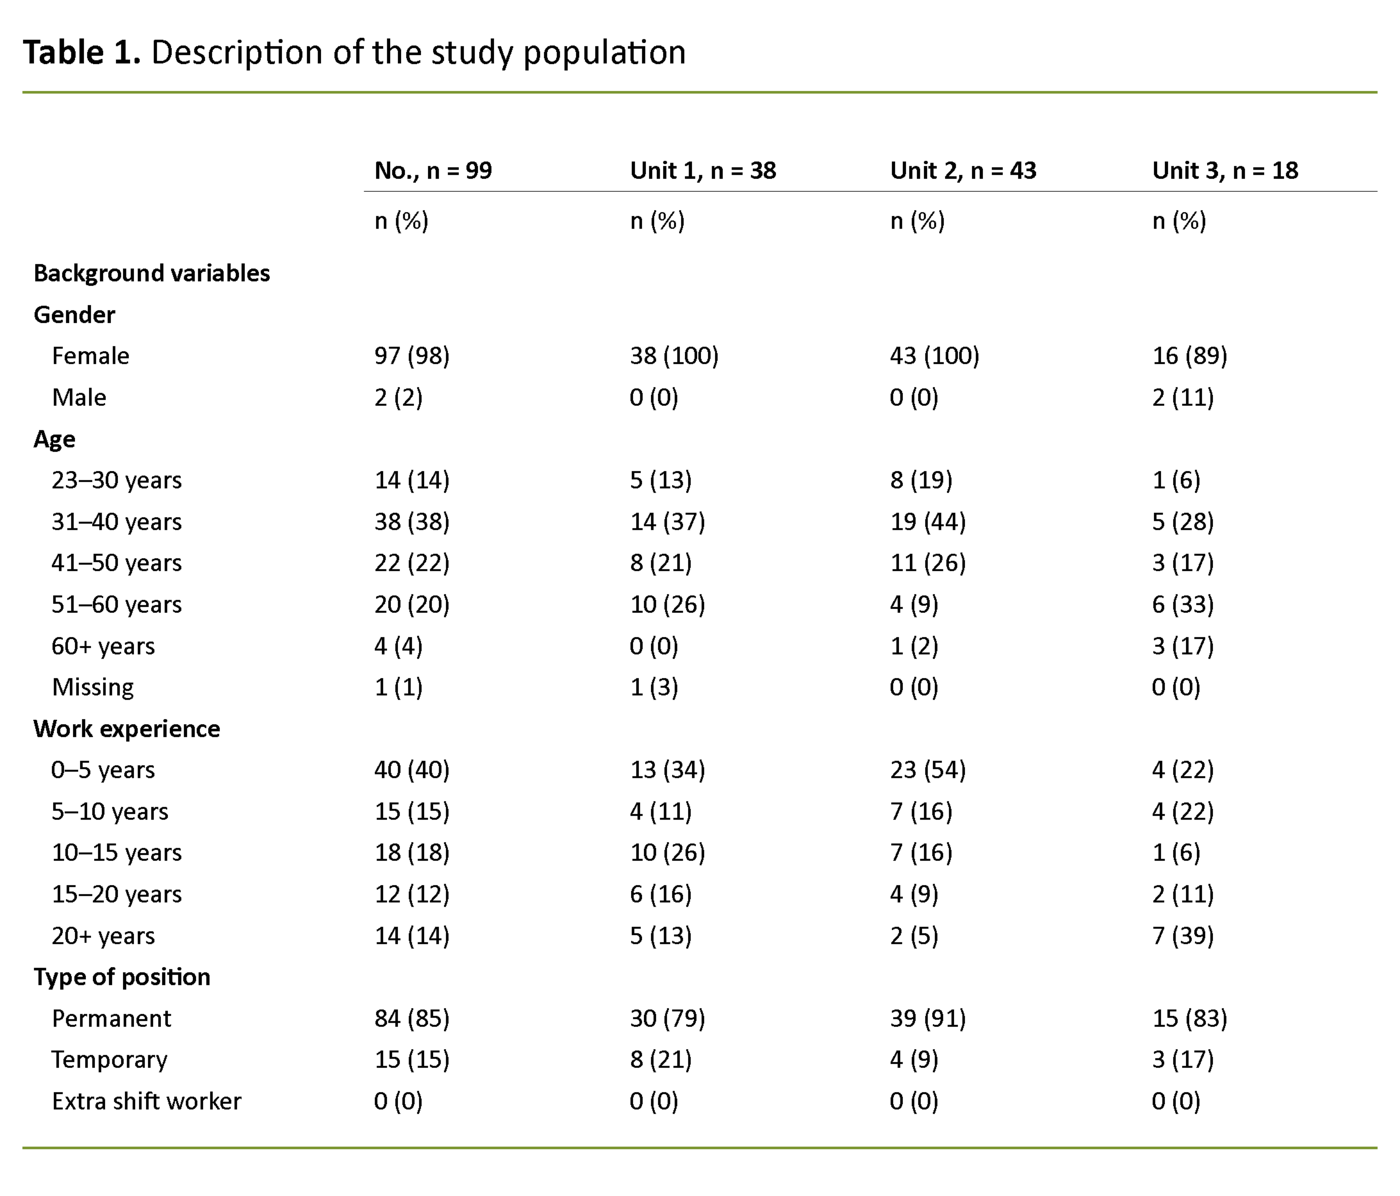 Table 1. Description of the study population